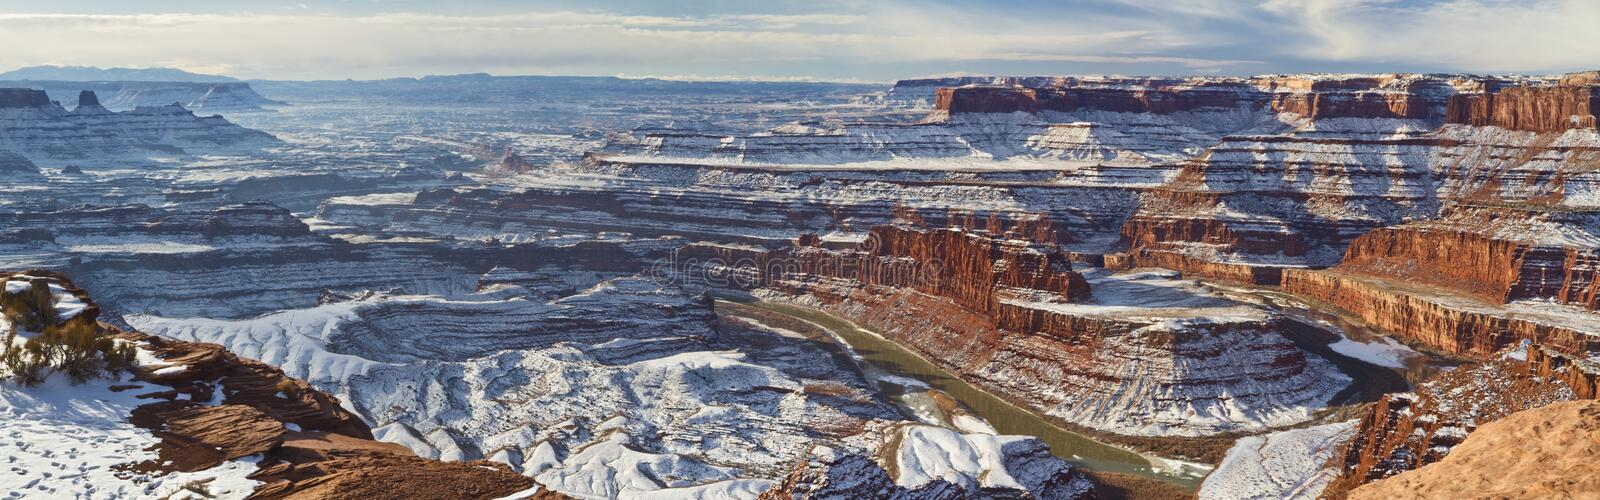 Dead Horse Point Colorado River Winter Panorama. Wintry view of a gooseneck bend in the Colorado River from the overlook in Dead Horse Point State Park Utah royalty free stock photos